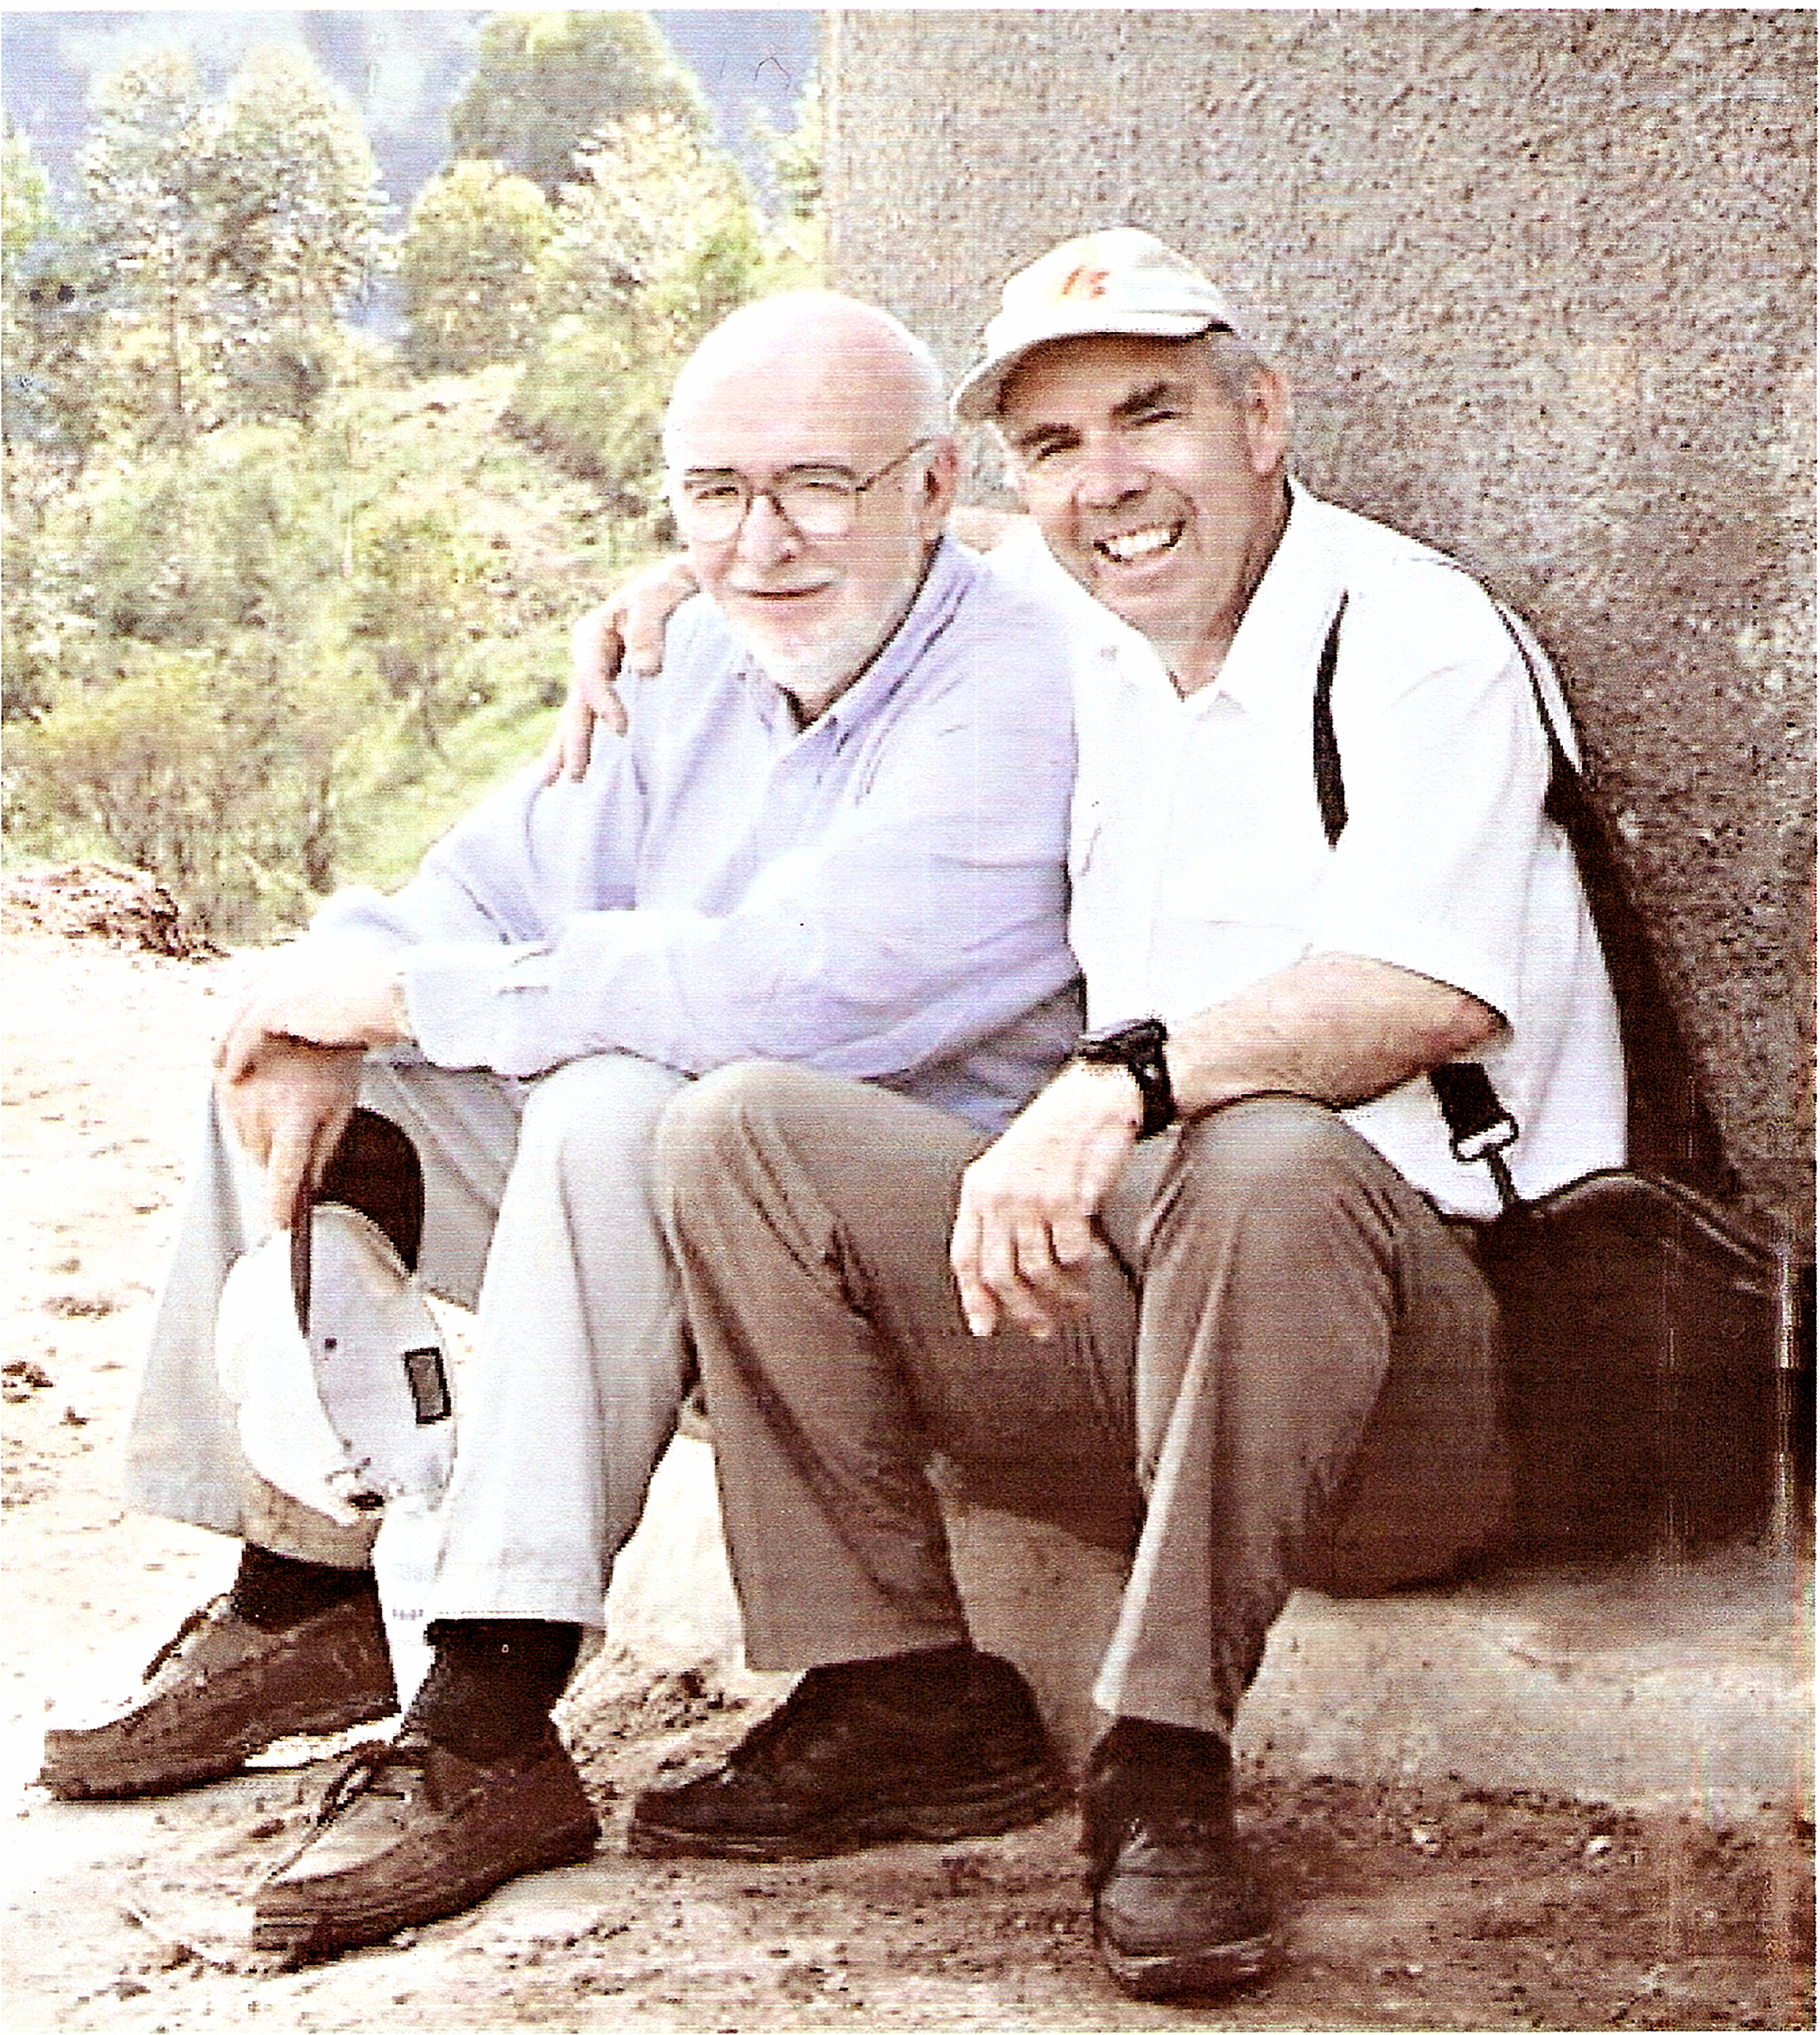 Founding Fathers Bob Dell and Fraser Edwards working for clean water in Africa